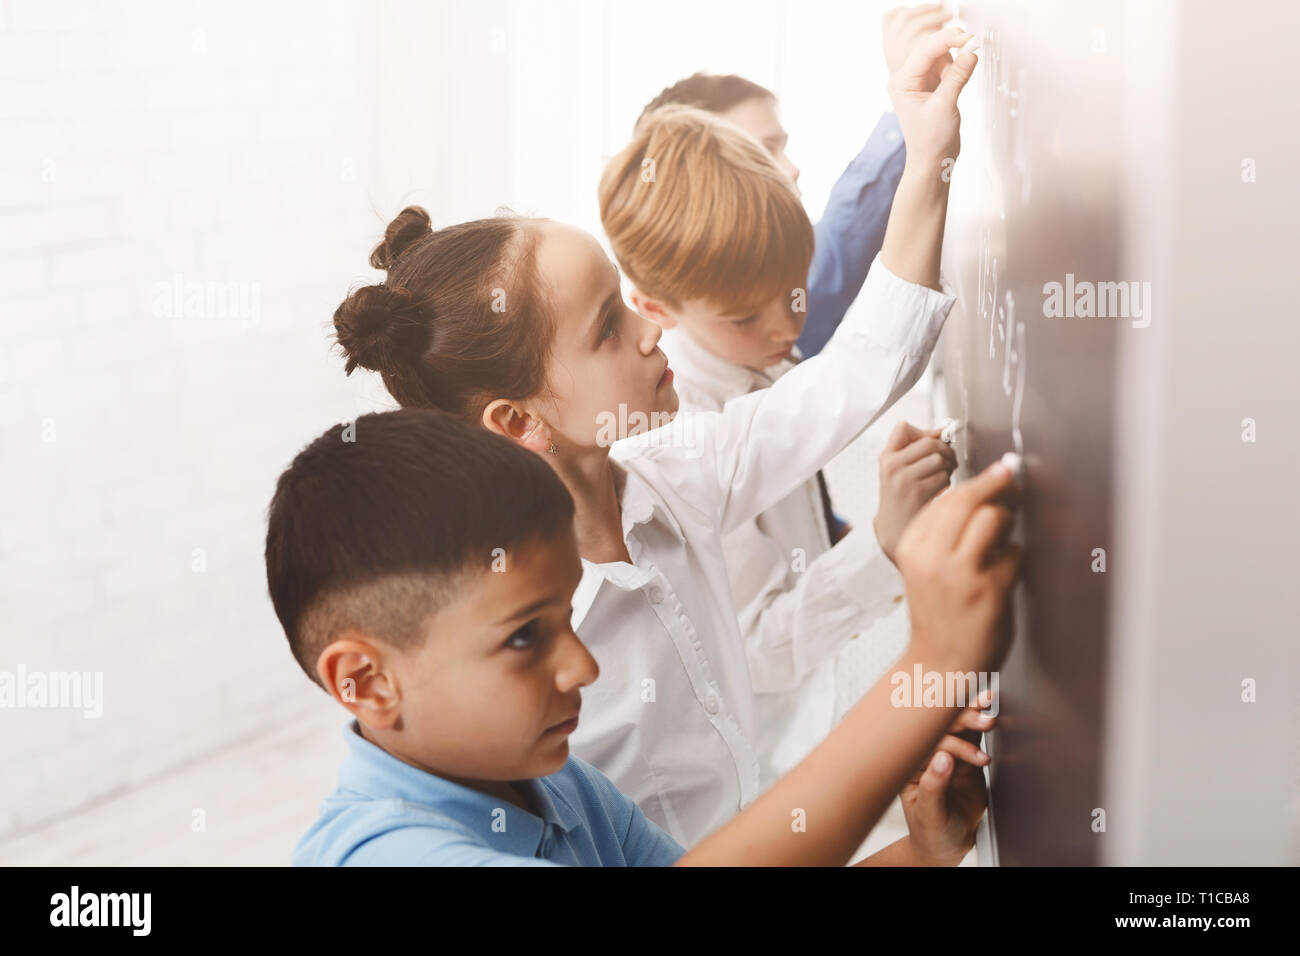 Children writing maths equations on the board - Stock Image